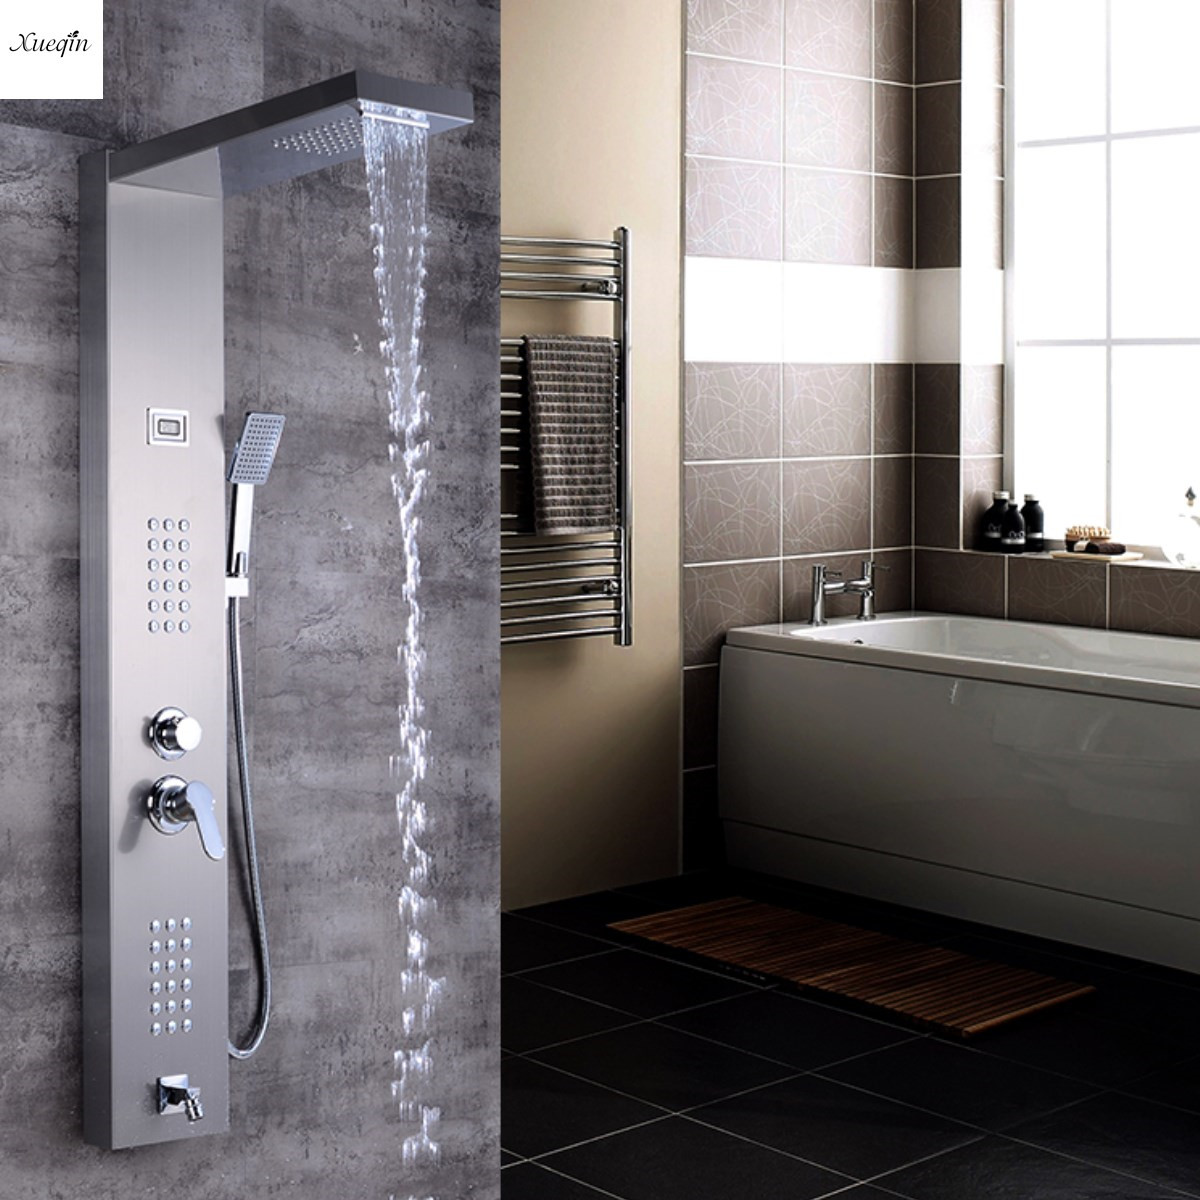 Shower Equipment Brushed Nickel Finish Massage Jet Tankless Rainfall Shower Tower Bathroom Rainfall Shower Panel Thermostatic Spout Shower Column Back To Search Resultshome Improvement